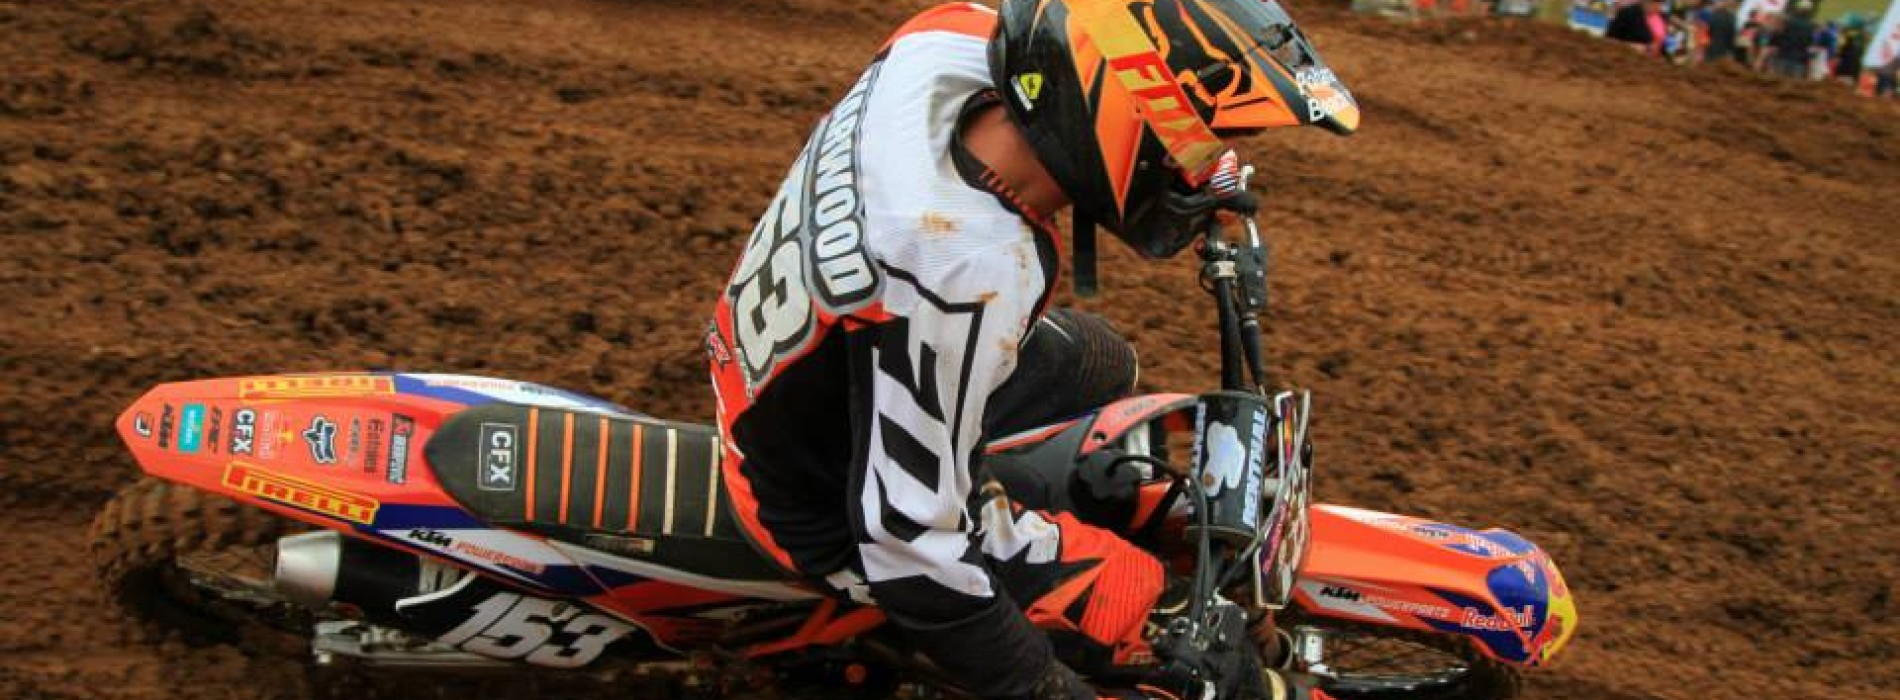 Hamish Harwood Catch-Up Australia MX Nationals Round 2